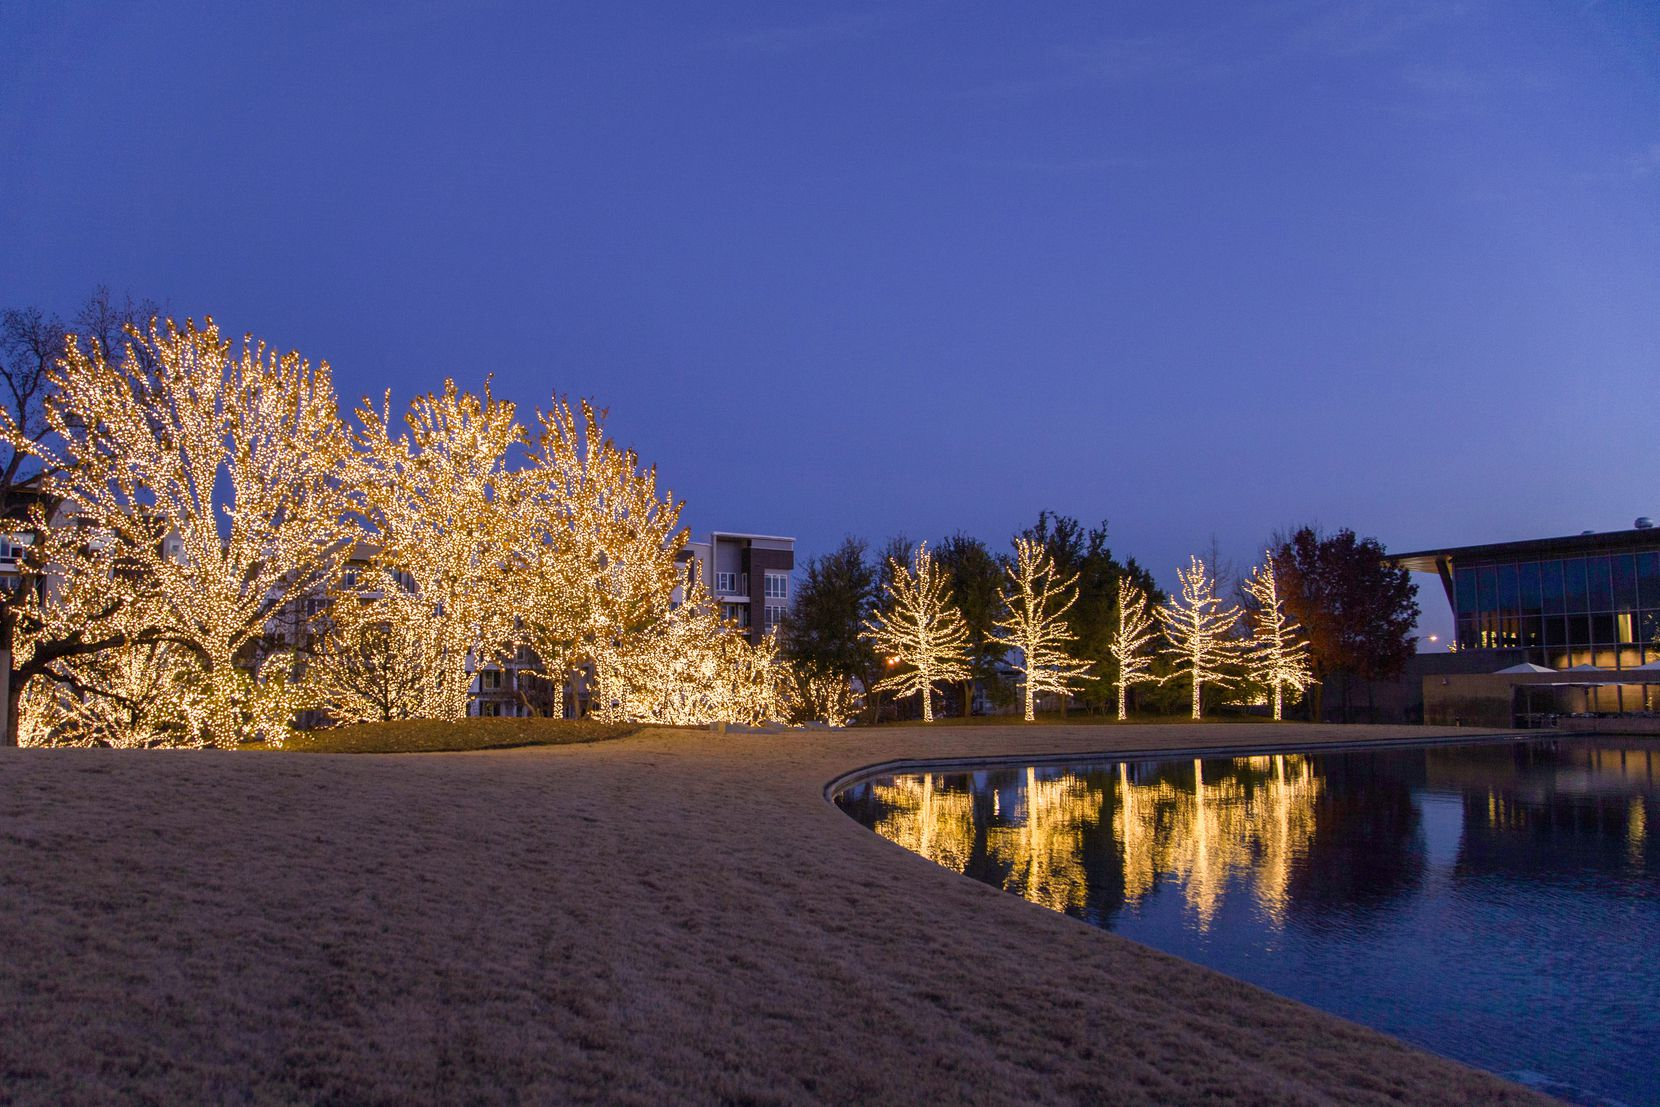 The Modern Art Museum of Fort Worth and its tree-dotted grounds will be illuminated for the season.